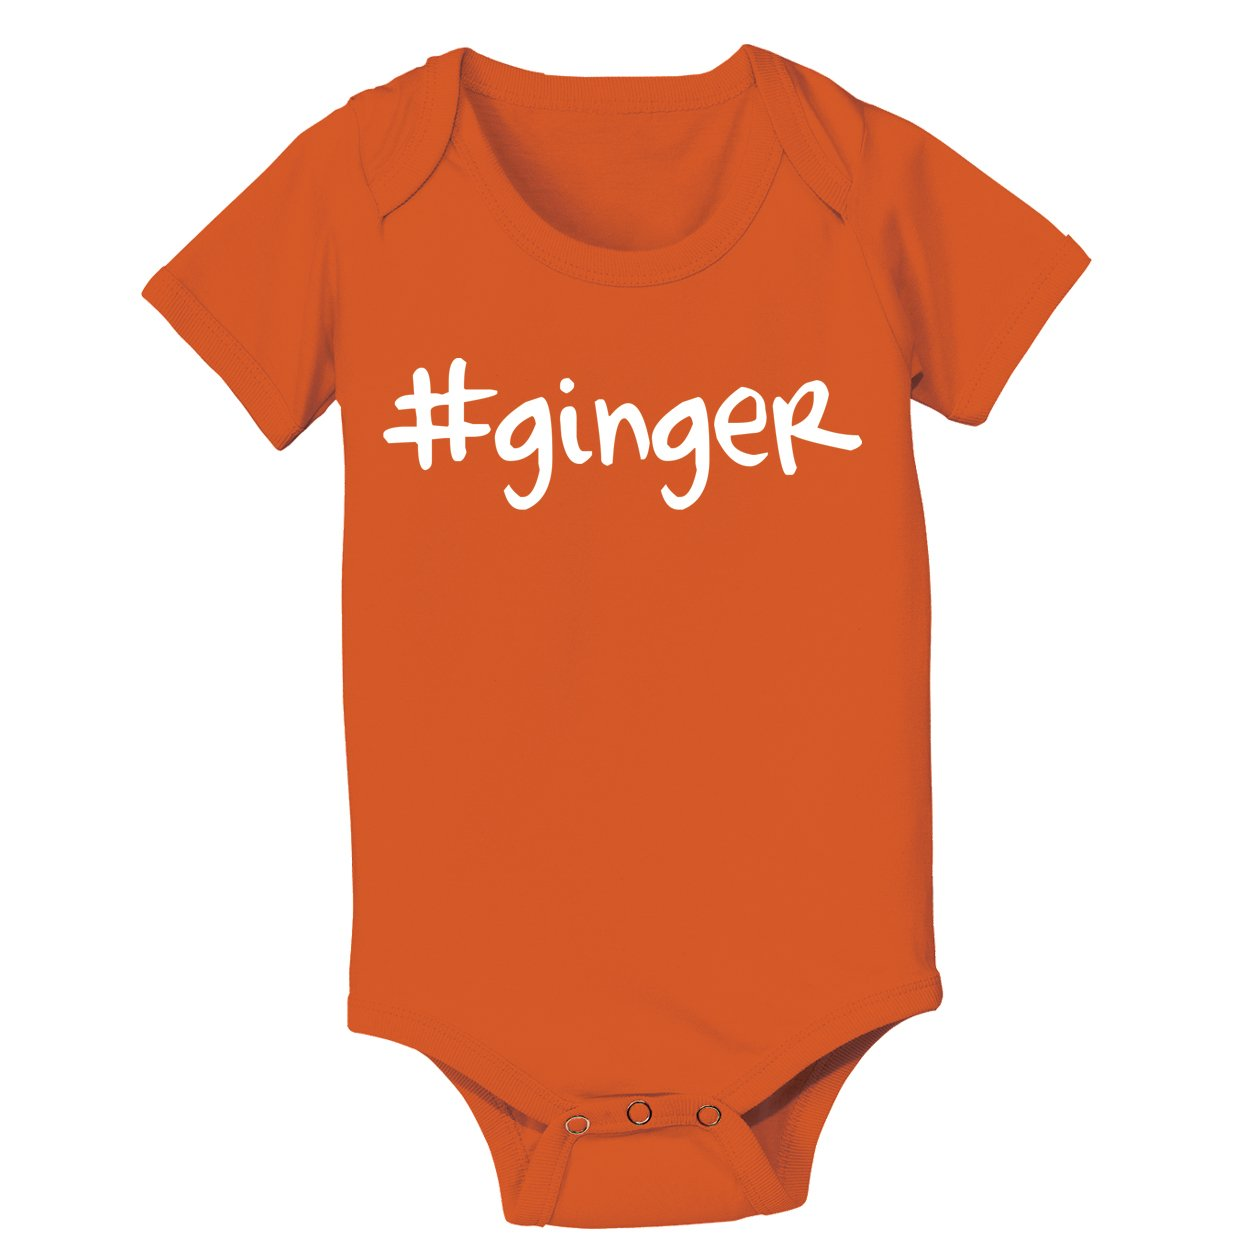 Funny Threads Outlet Hashtag Ginger Redhead Baby One Piece Newborn Orange